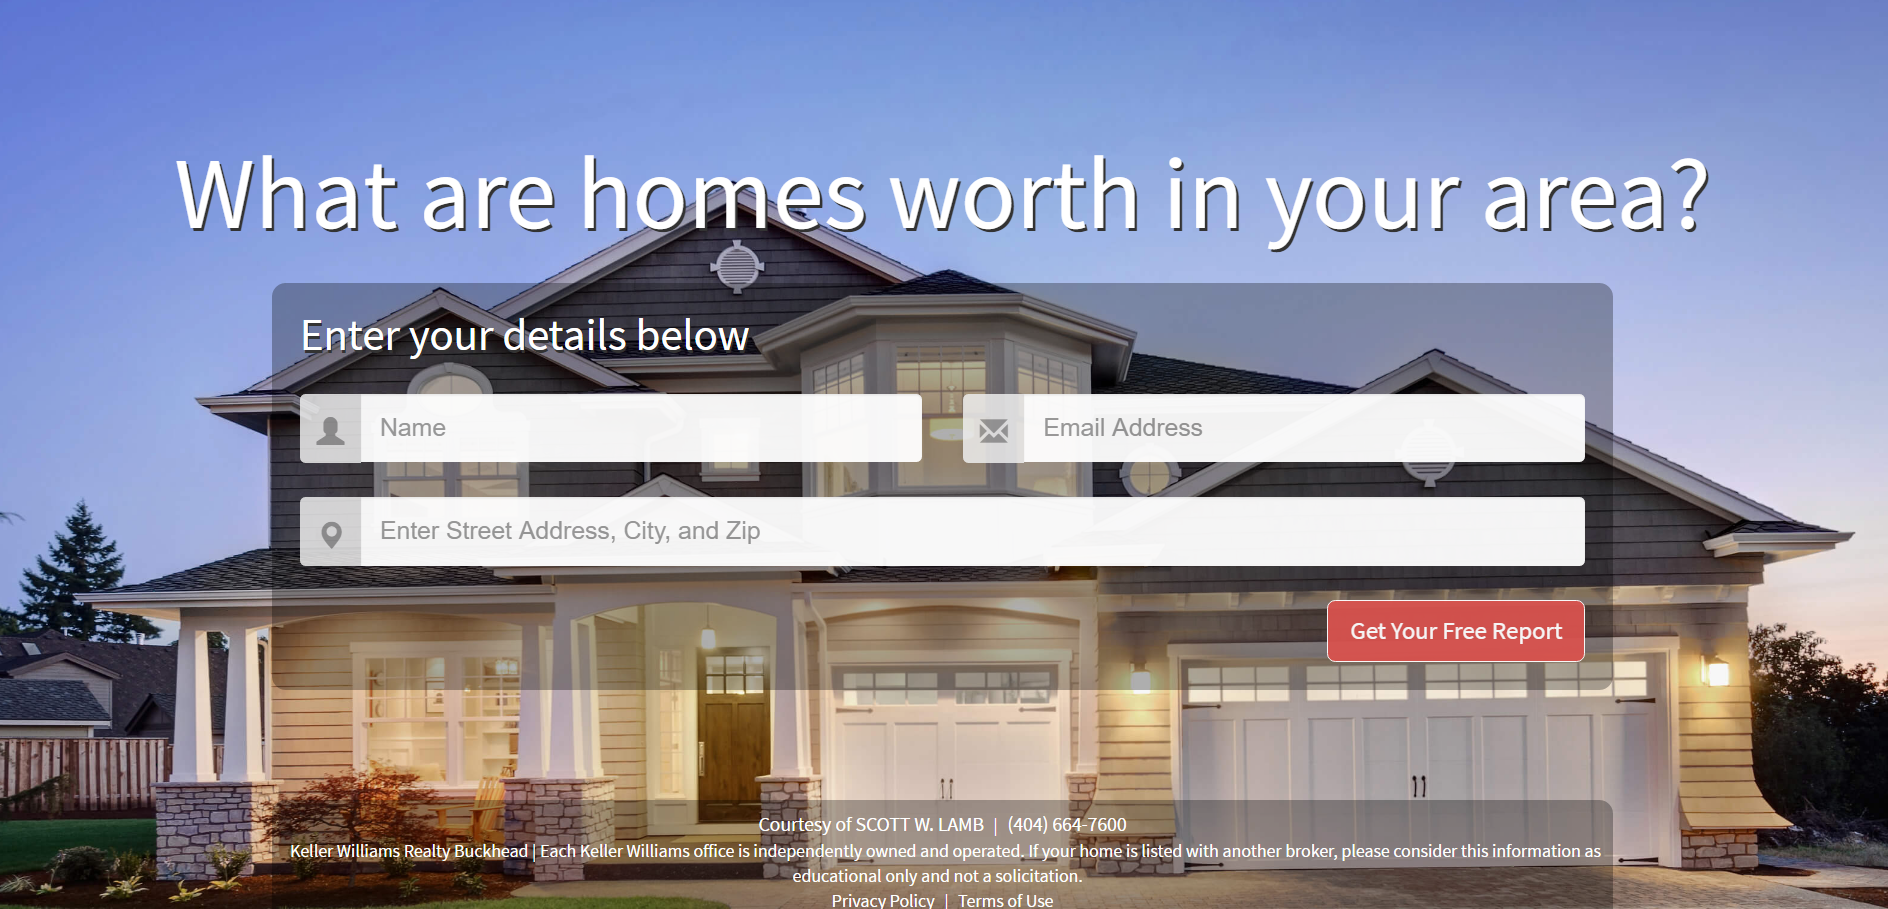 scott lamb realtor what are homes worth in my area www